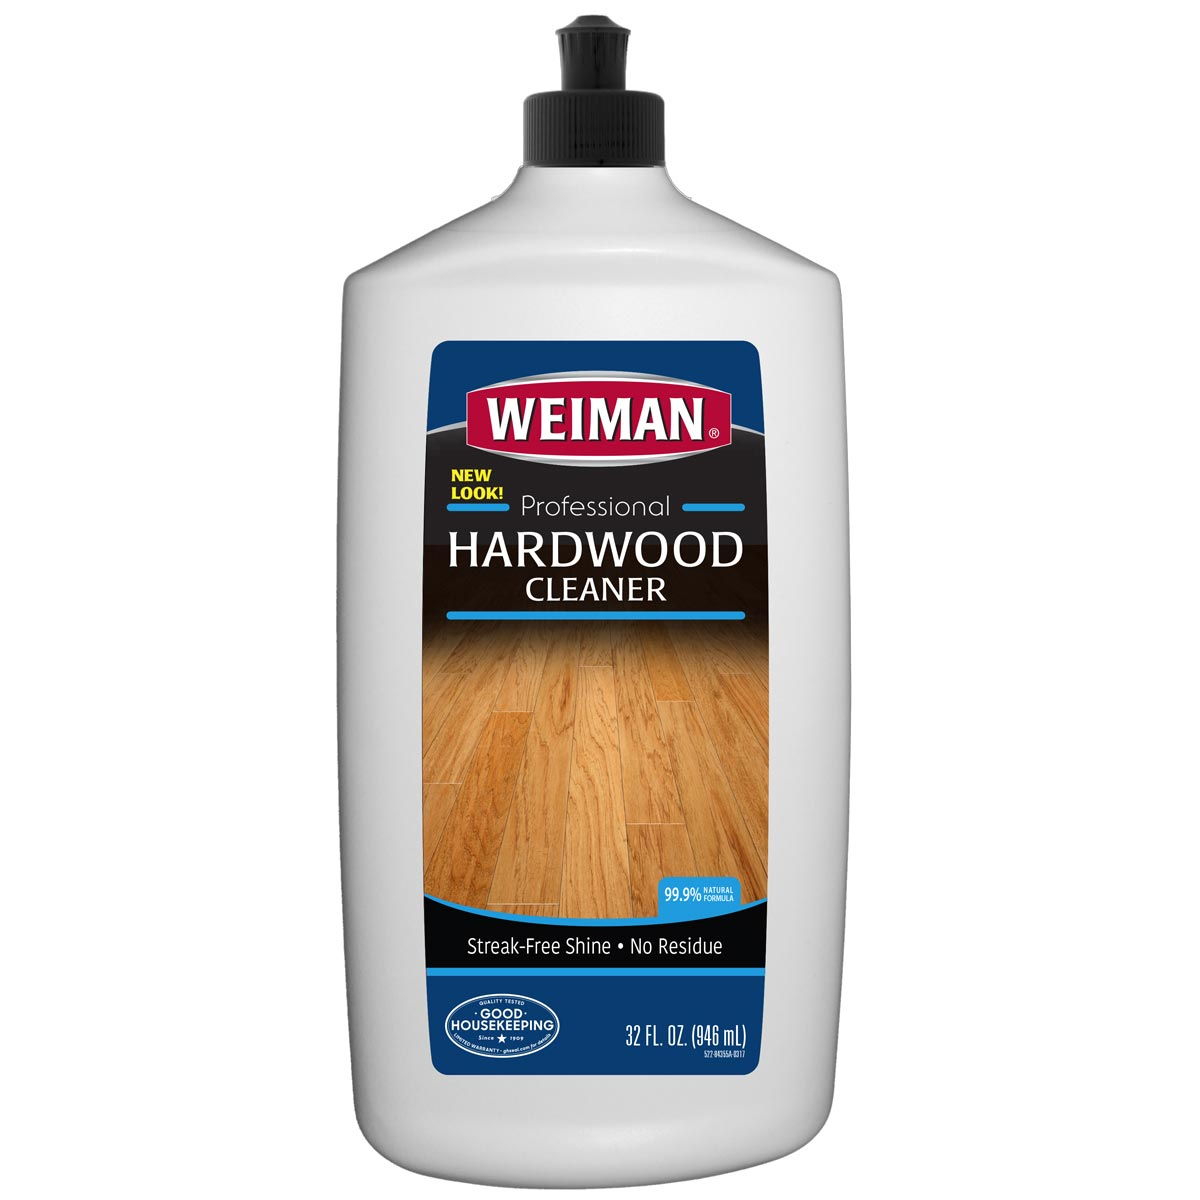 https://googone.com/media/catalog/product/w/e/weiman-hardwood-floor-cleaner_front_5.jpg